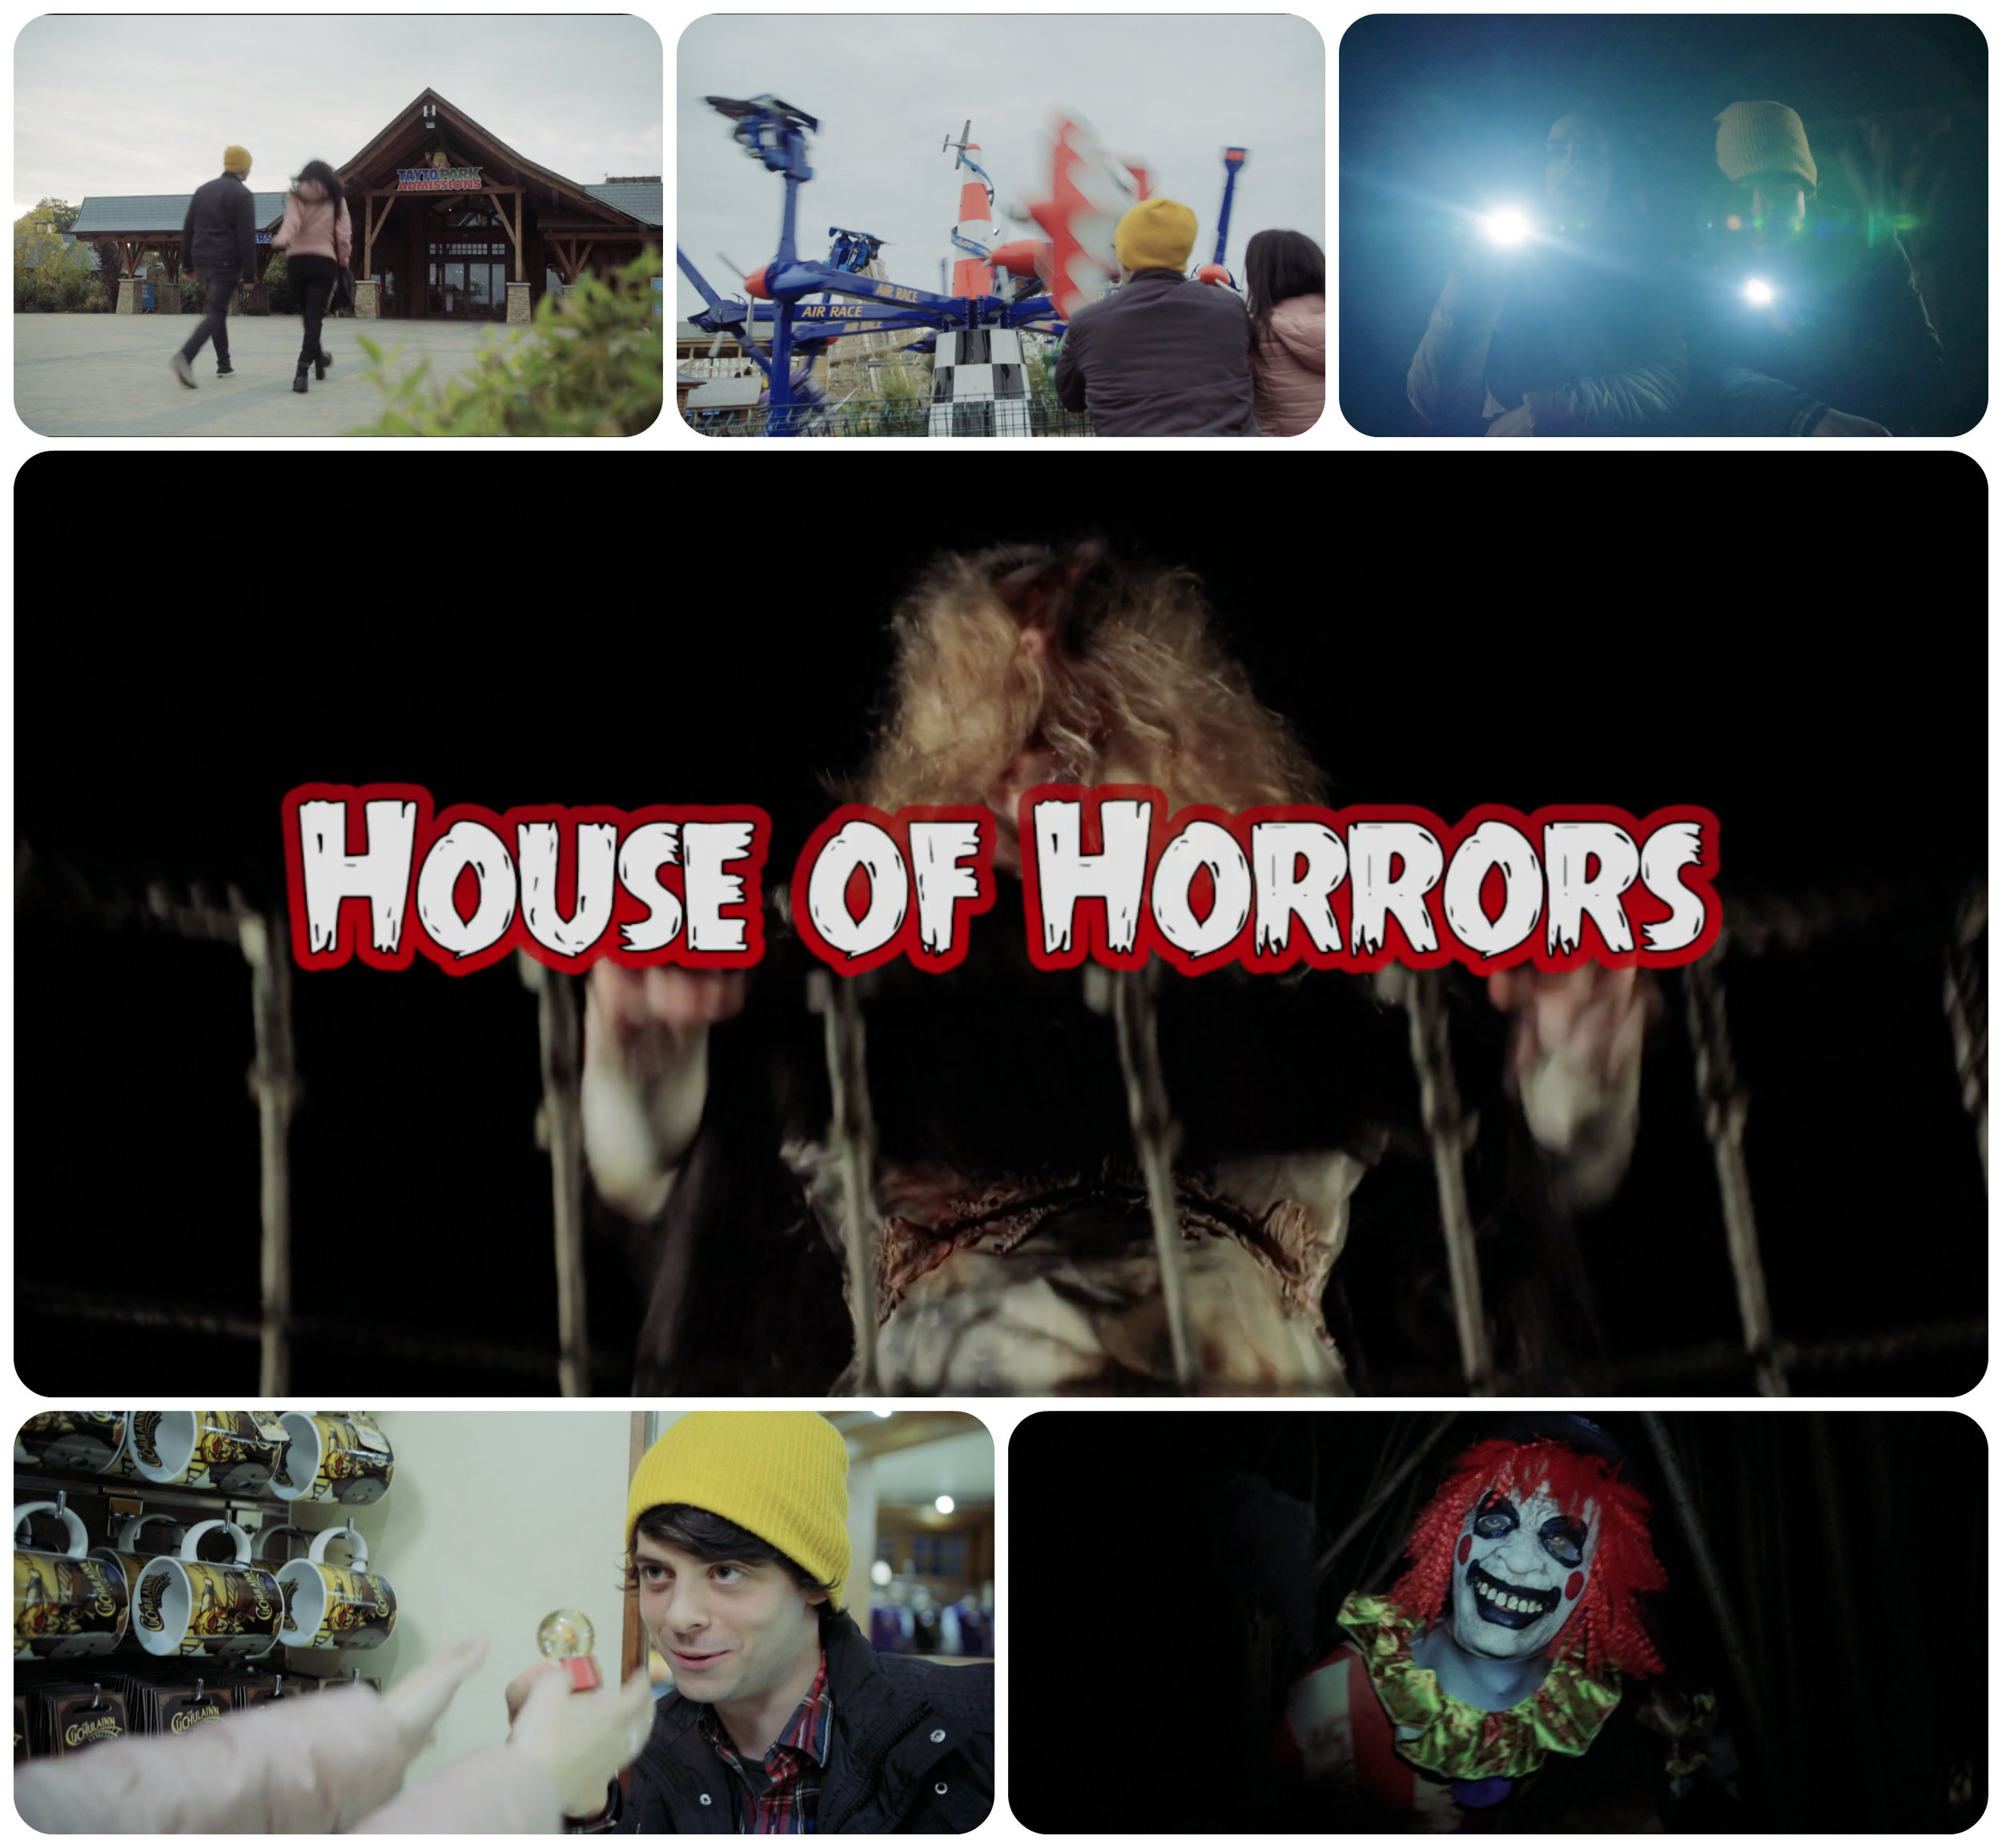 House_of_Horrors_Collage_1.jpg